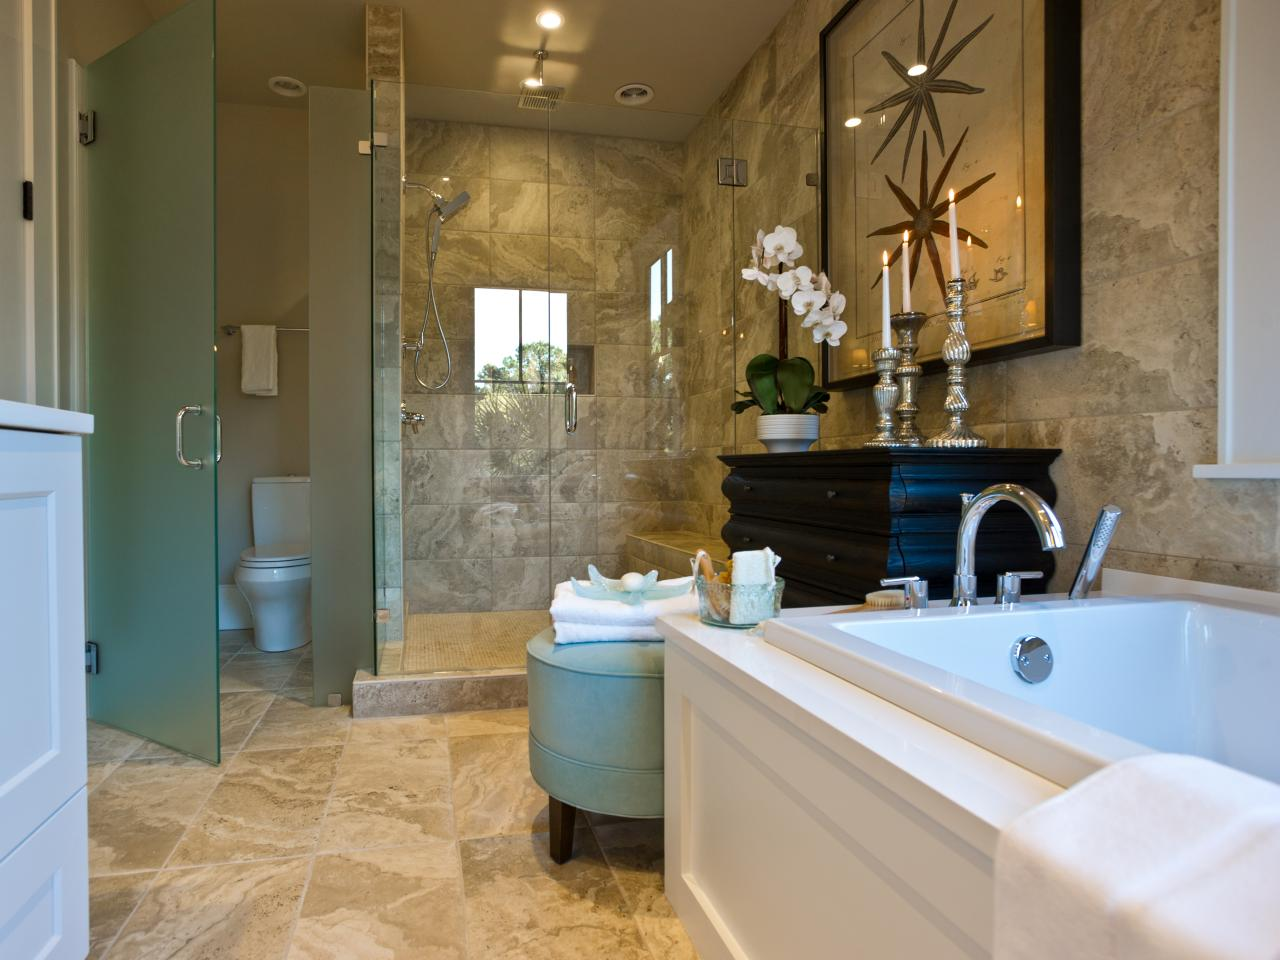 Hgtv dream home 2013 master bathroom pictures and video Master bedroom with bathtub